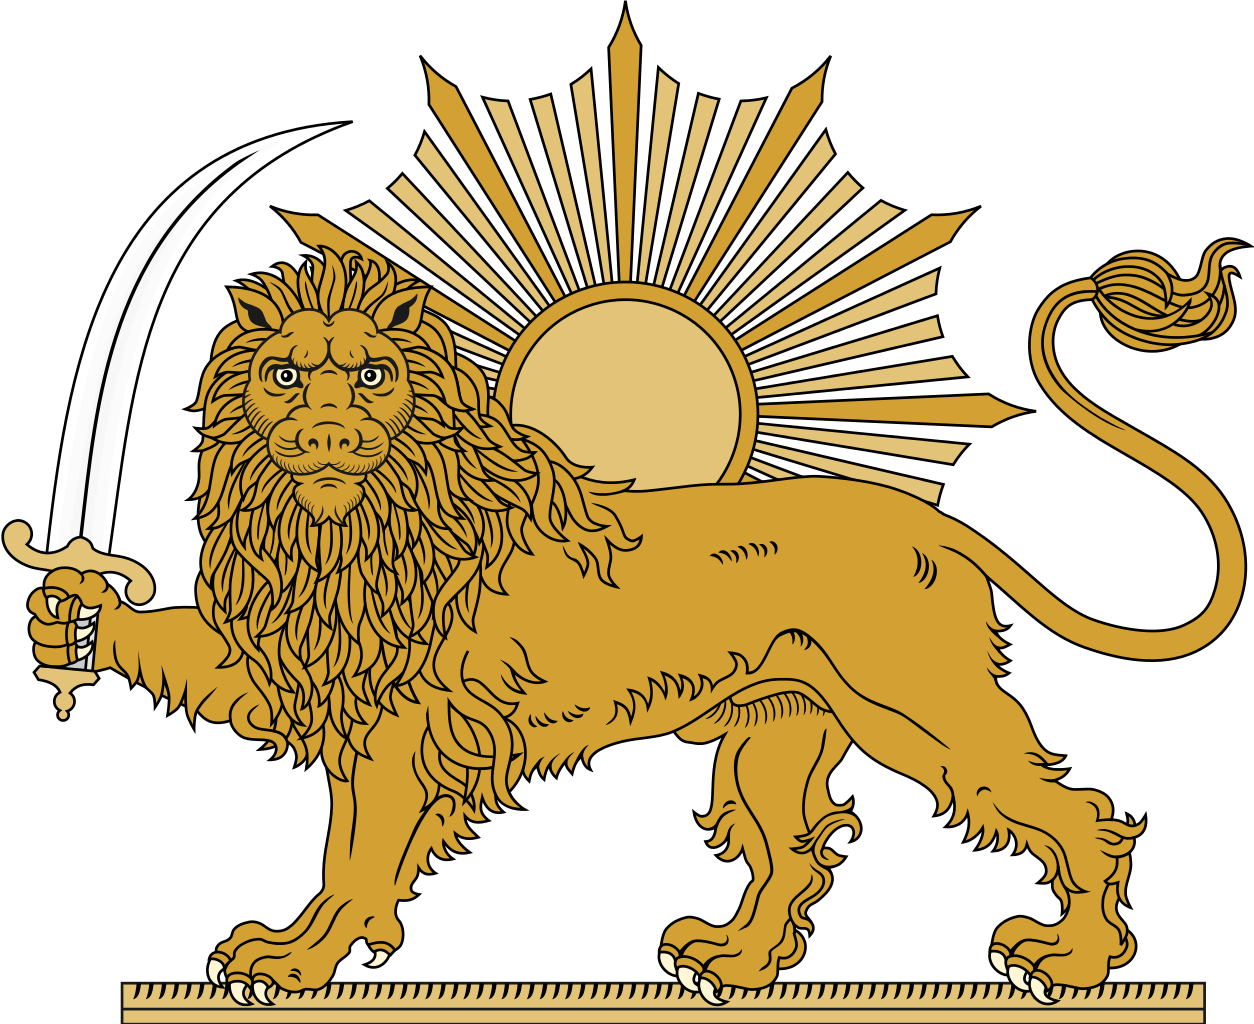 The Lion And Sun Persian شیر و خورشید Shir O Khorshid Is One Of The Main Emblems Of Iran And Formerly Was An E Persian Tattoo Ancient Lion Persian Empire